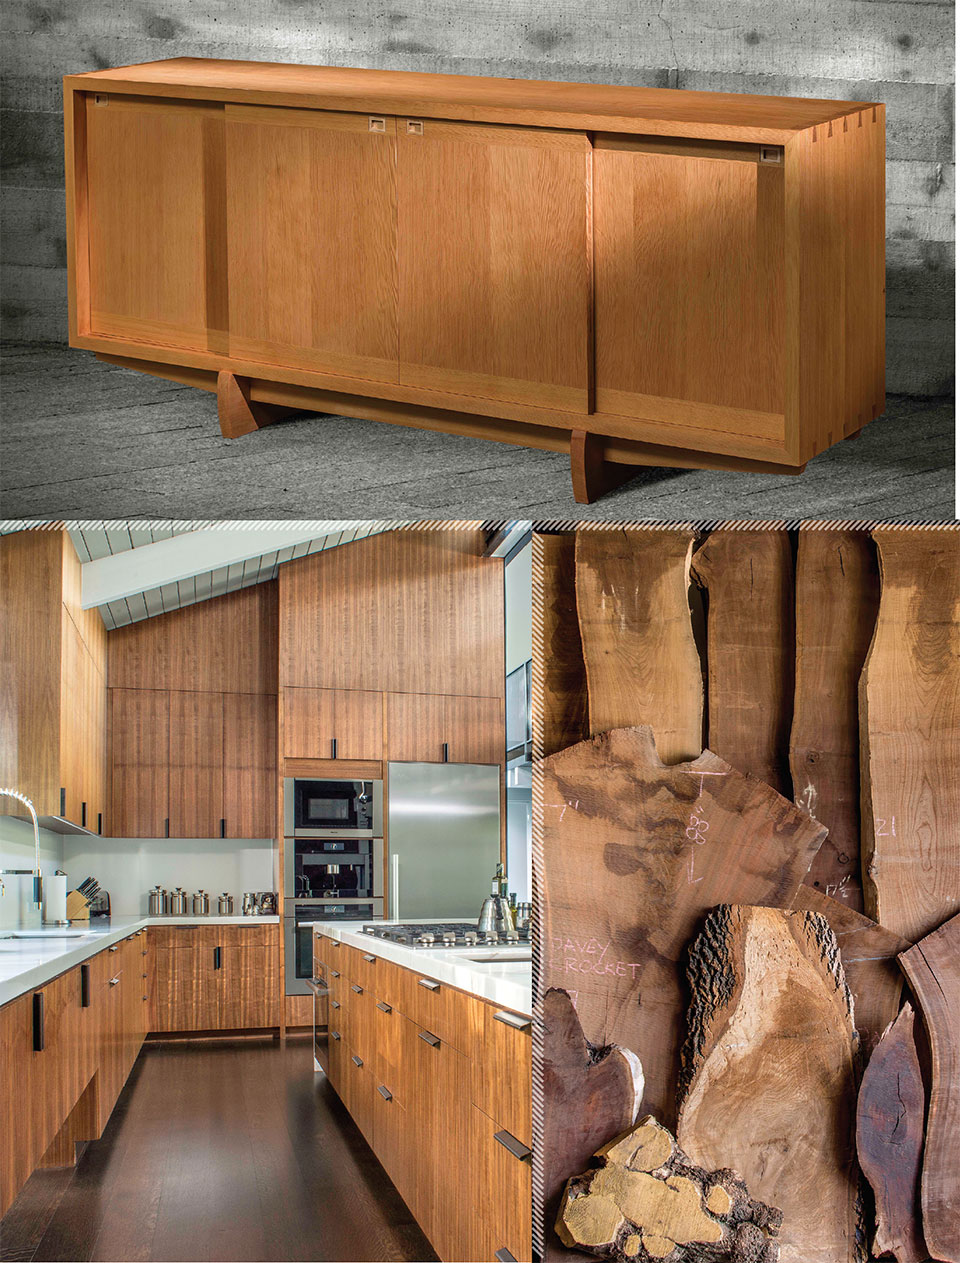 Working with Wood in the Modern West- Sun Valley Wood Cabinet and Kitchen